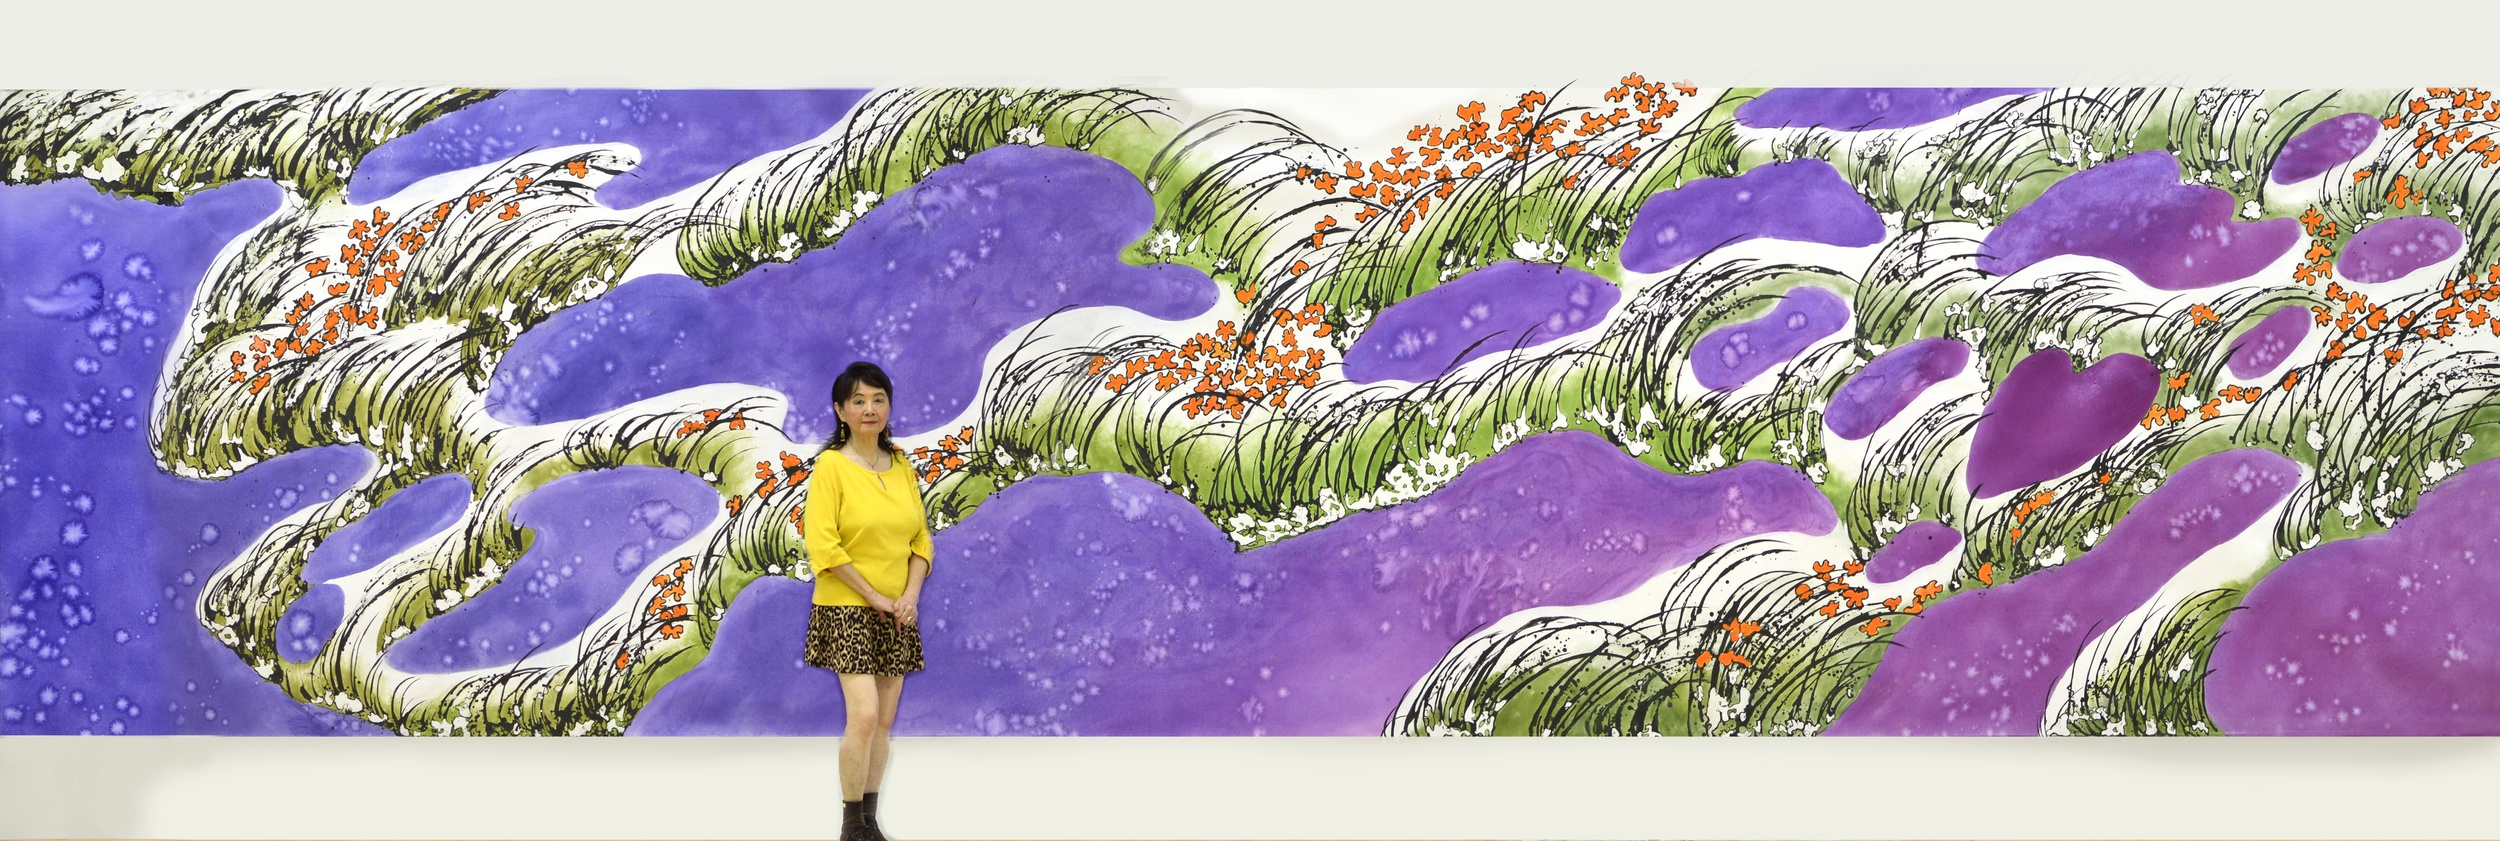 """Purple Swamp/Tiger Lily"" 2014 Acrylic on canvas 8x32 feet"